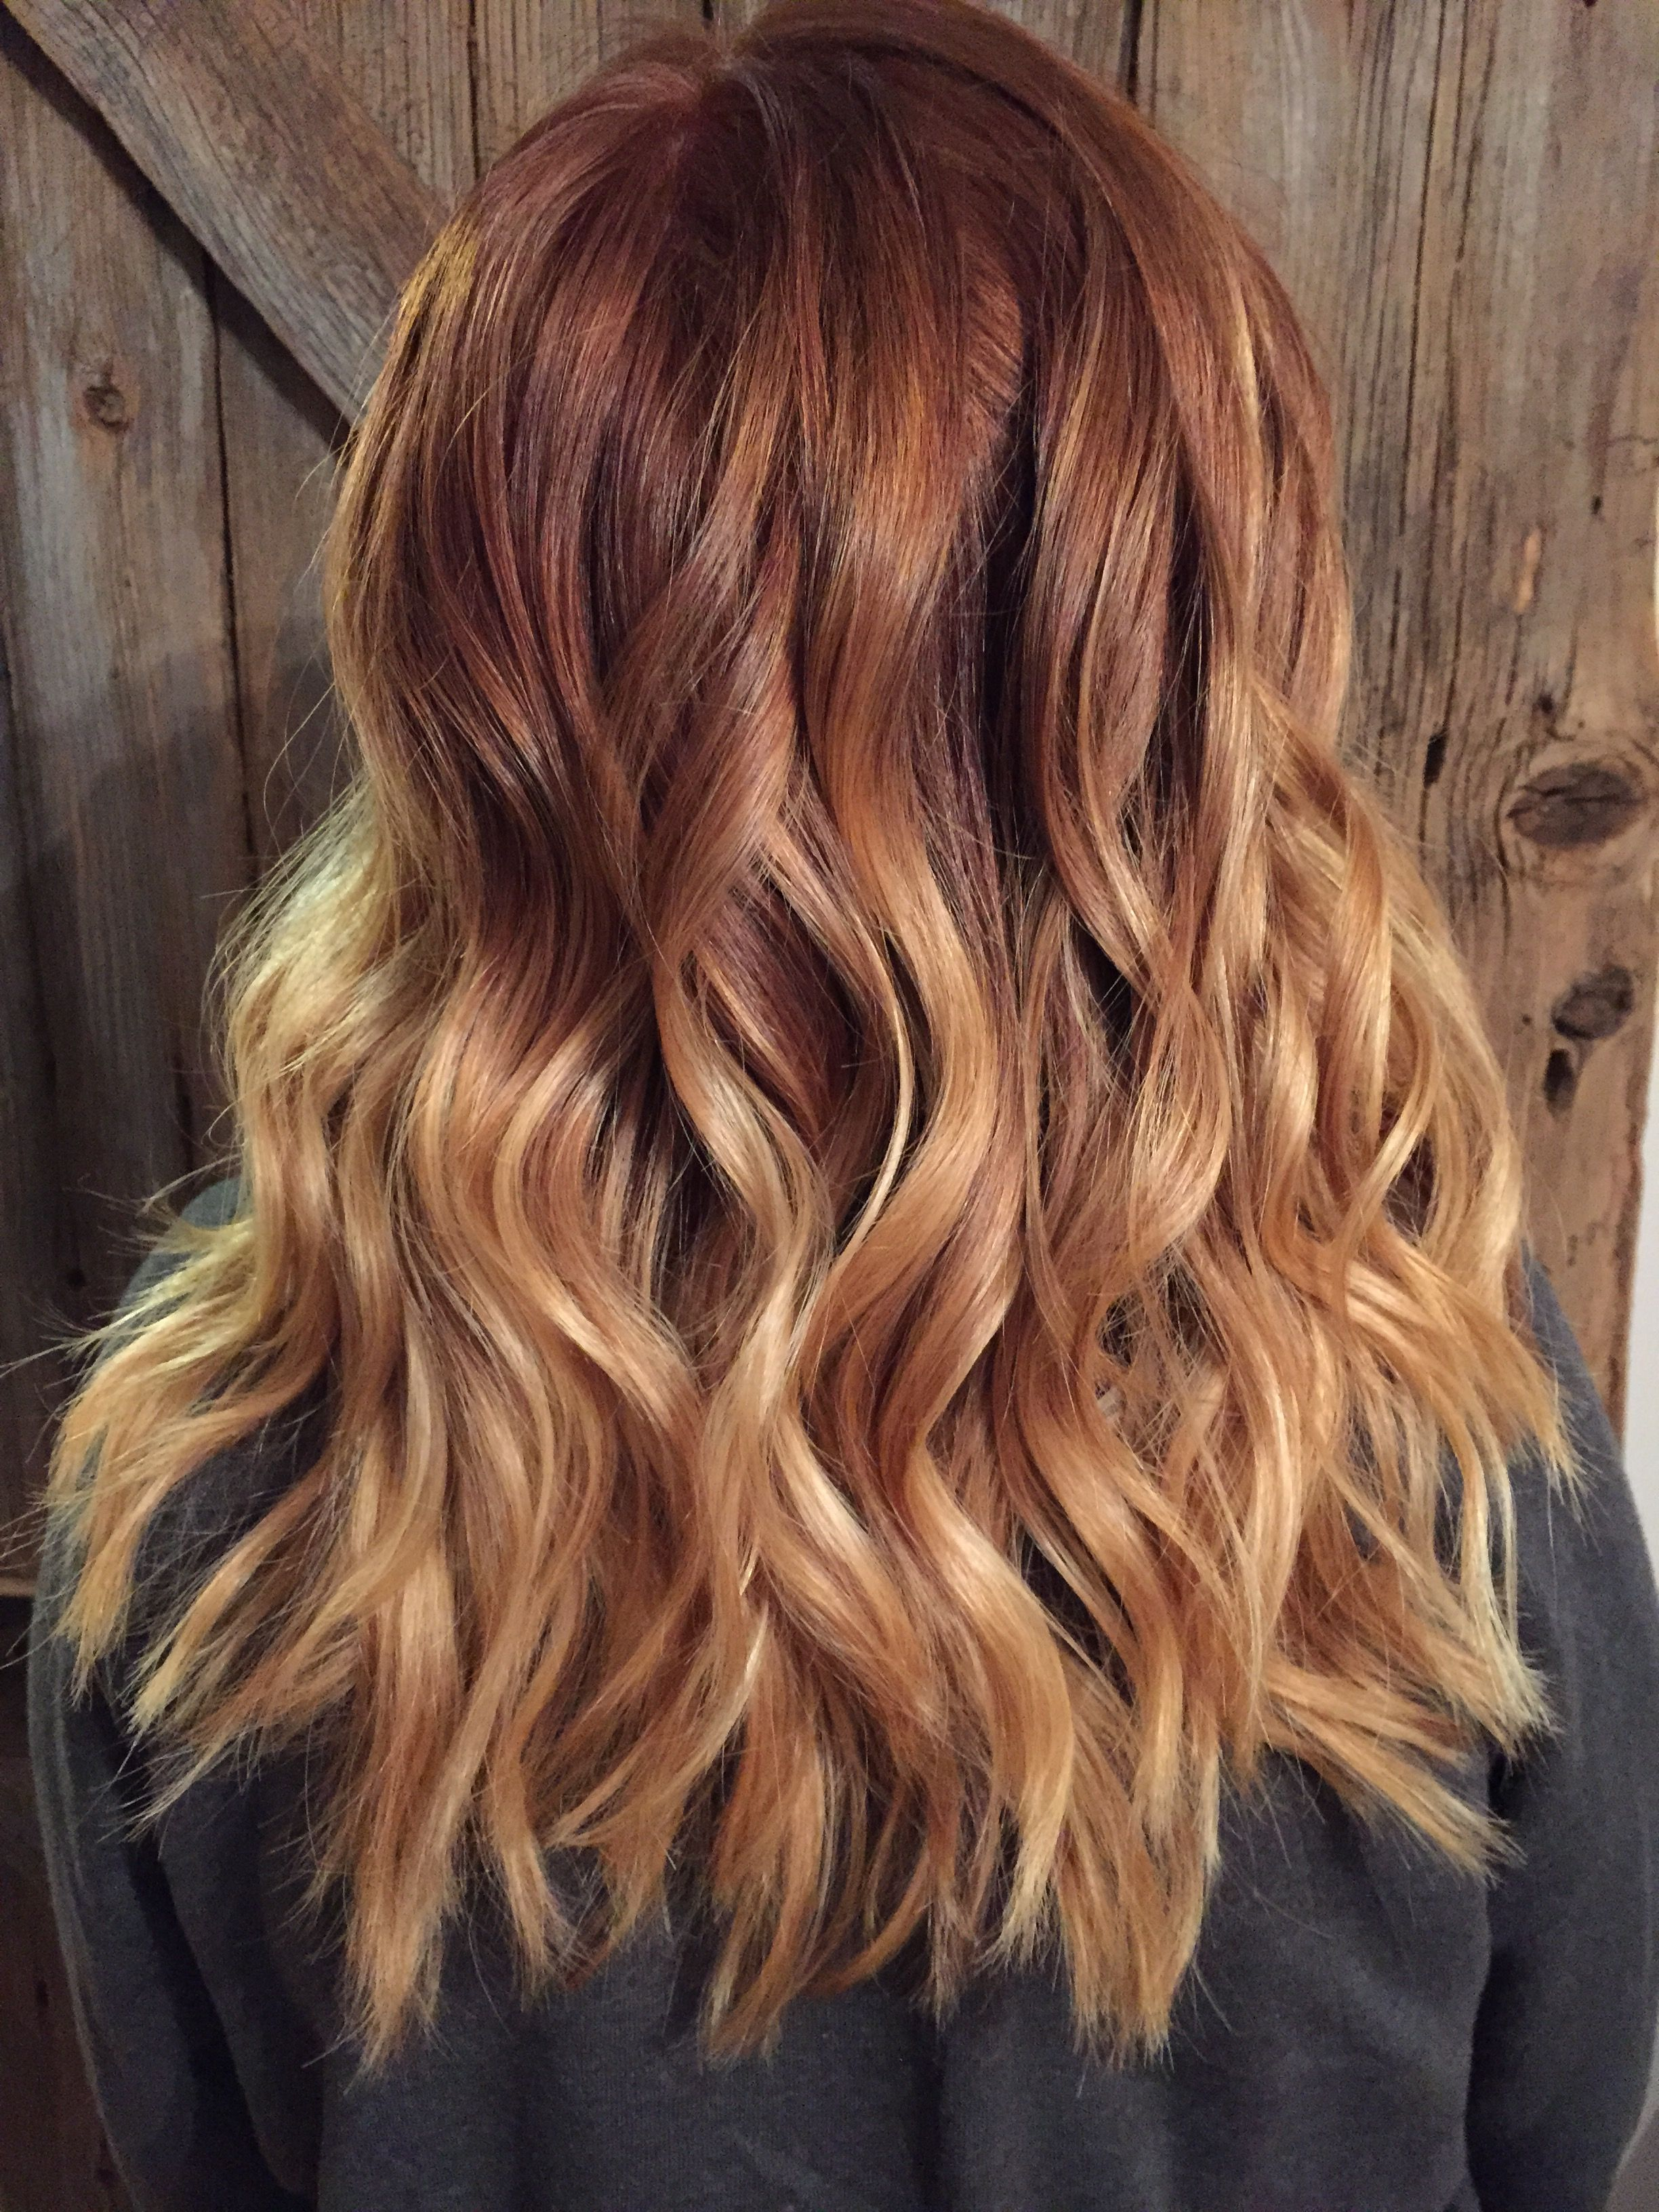 Copper Red to blonde ombré with balayage highlights | Hair ...